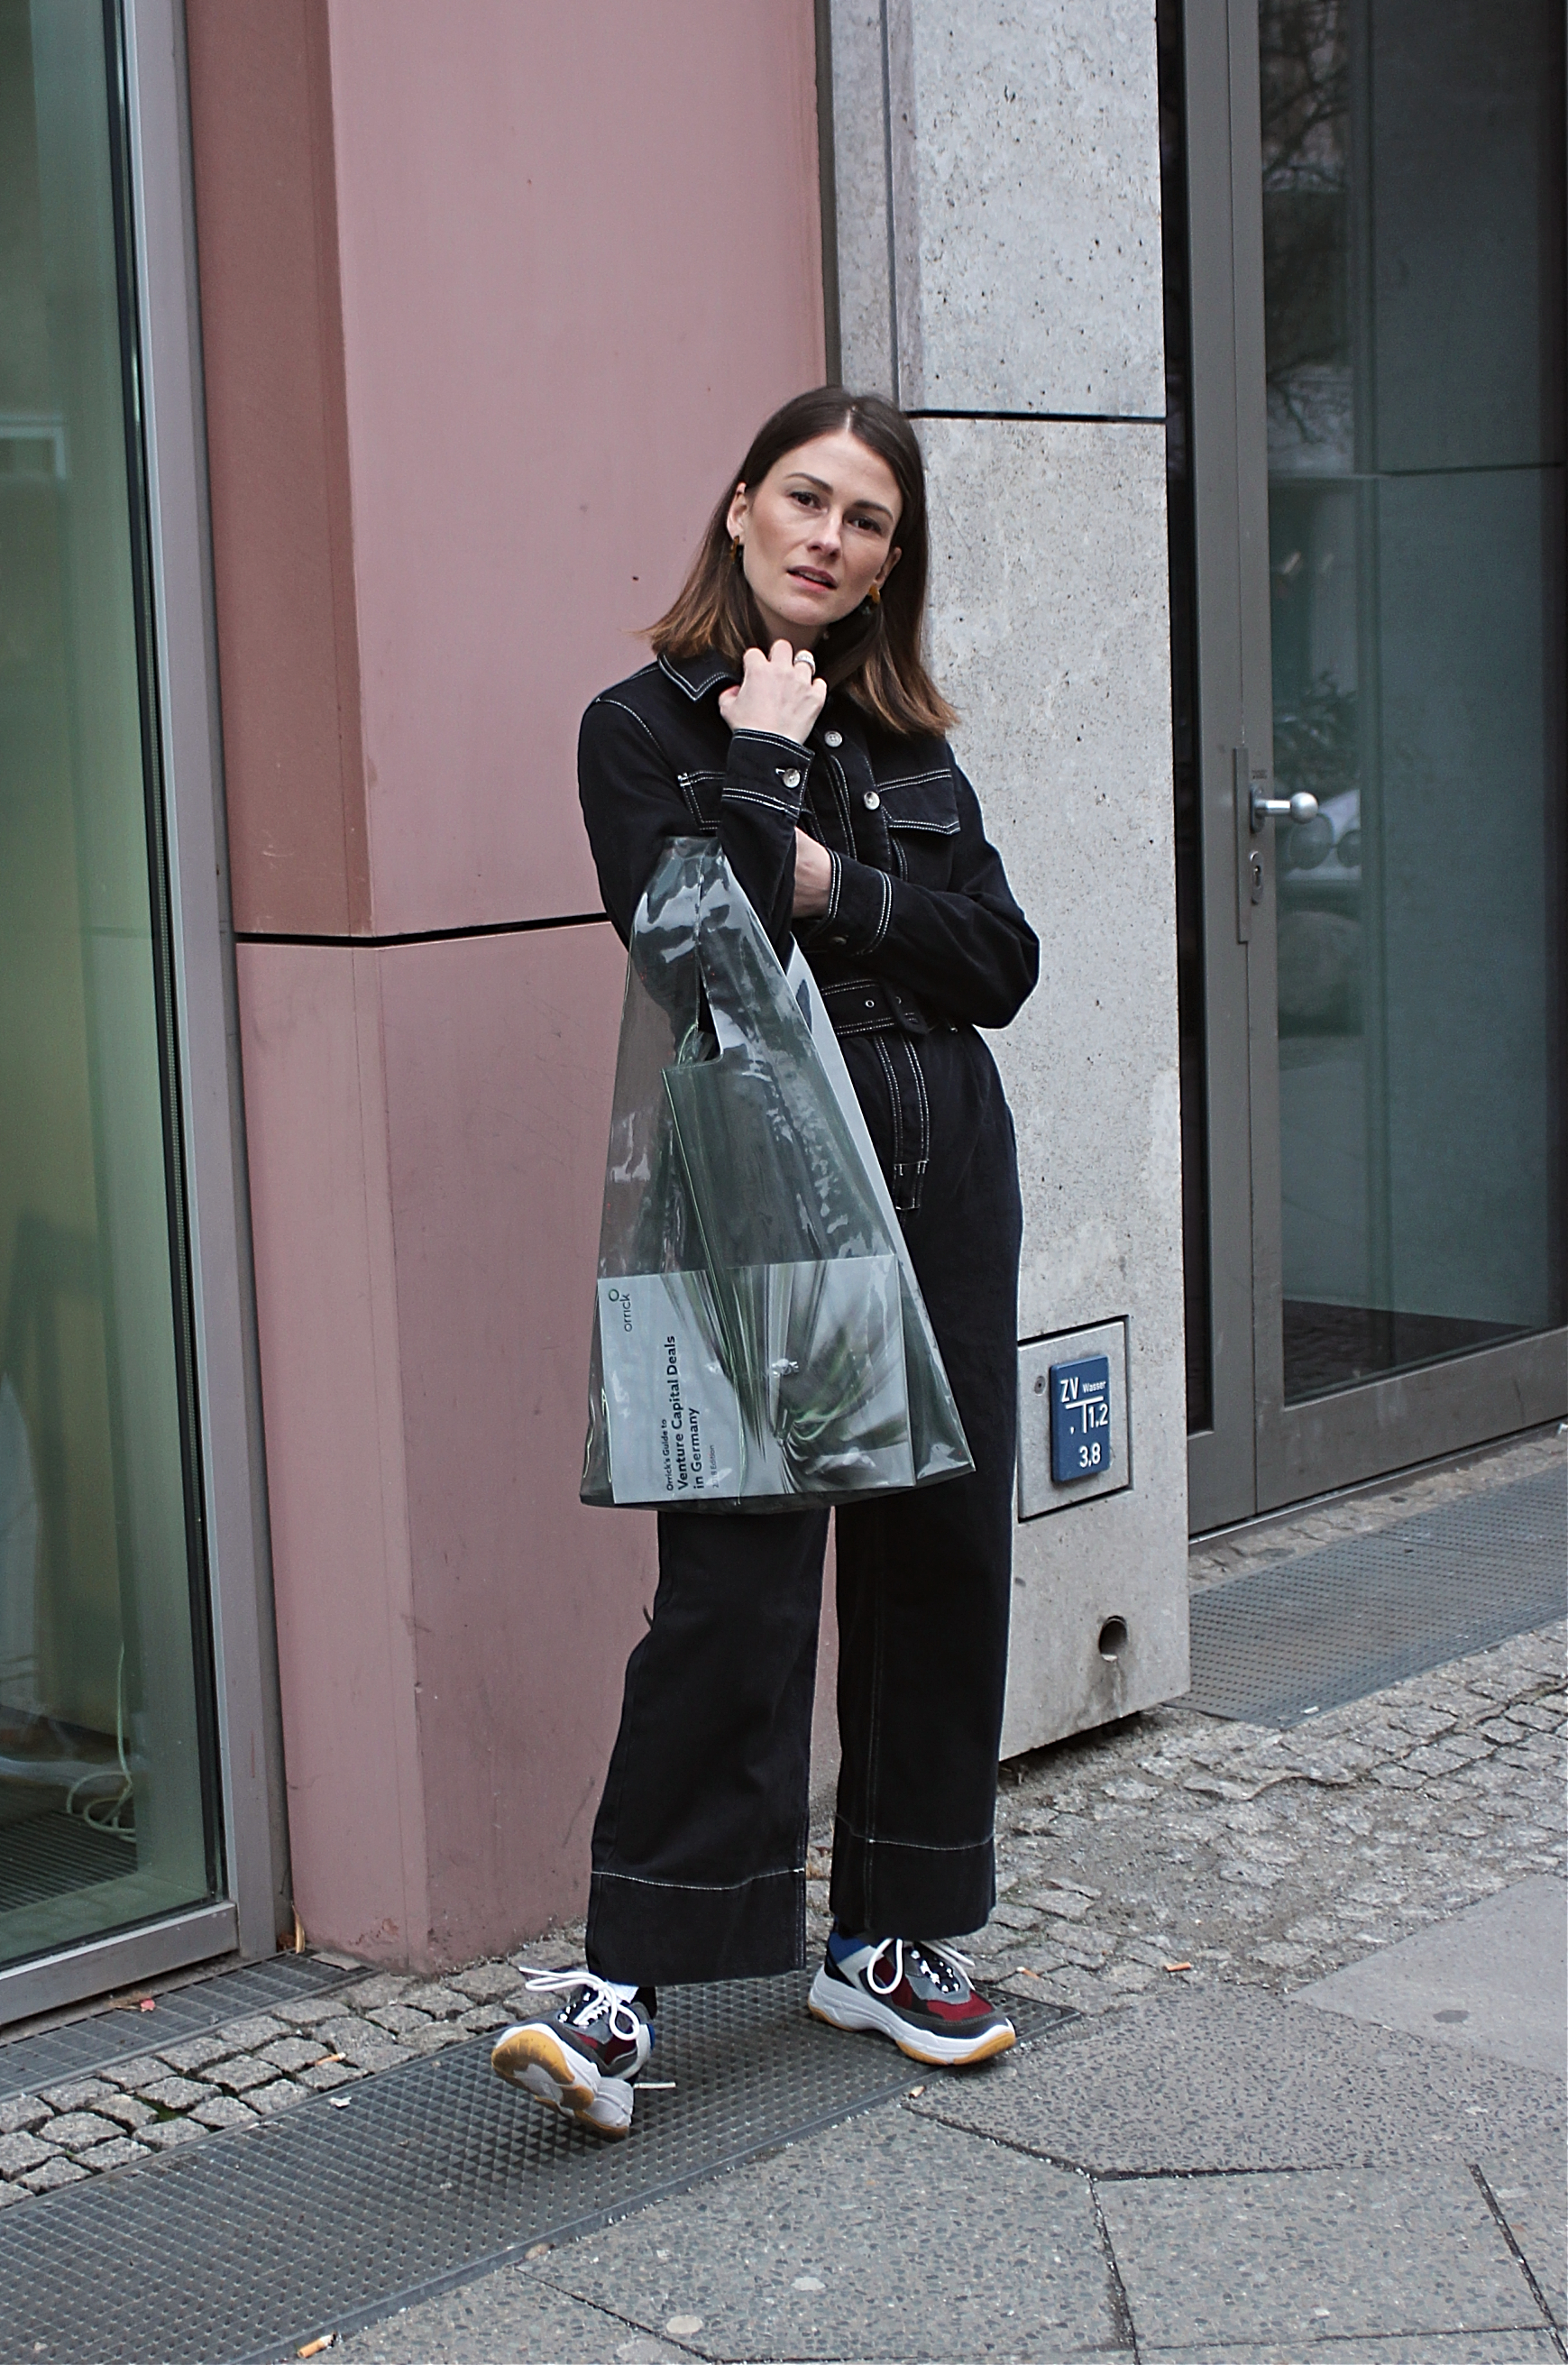 annaporter-zalando-collaboration-1.jpg